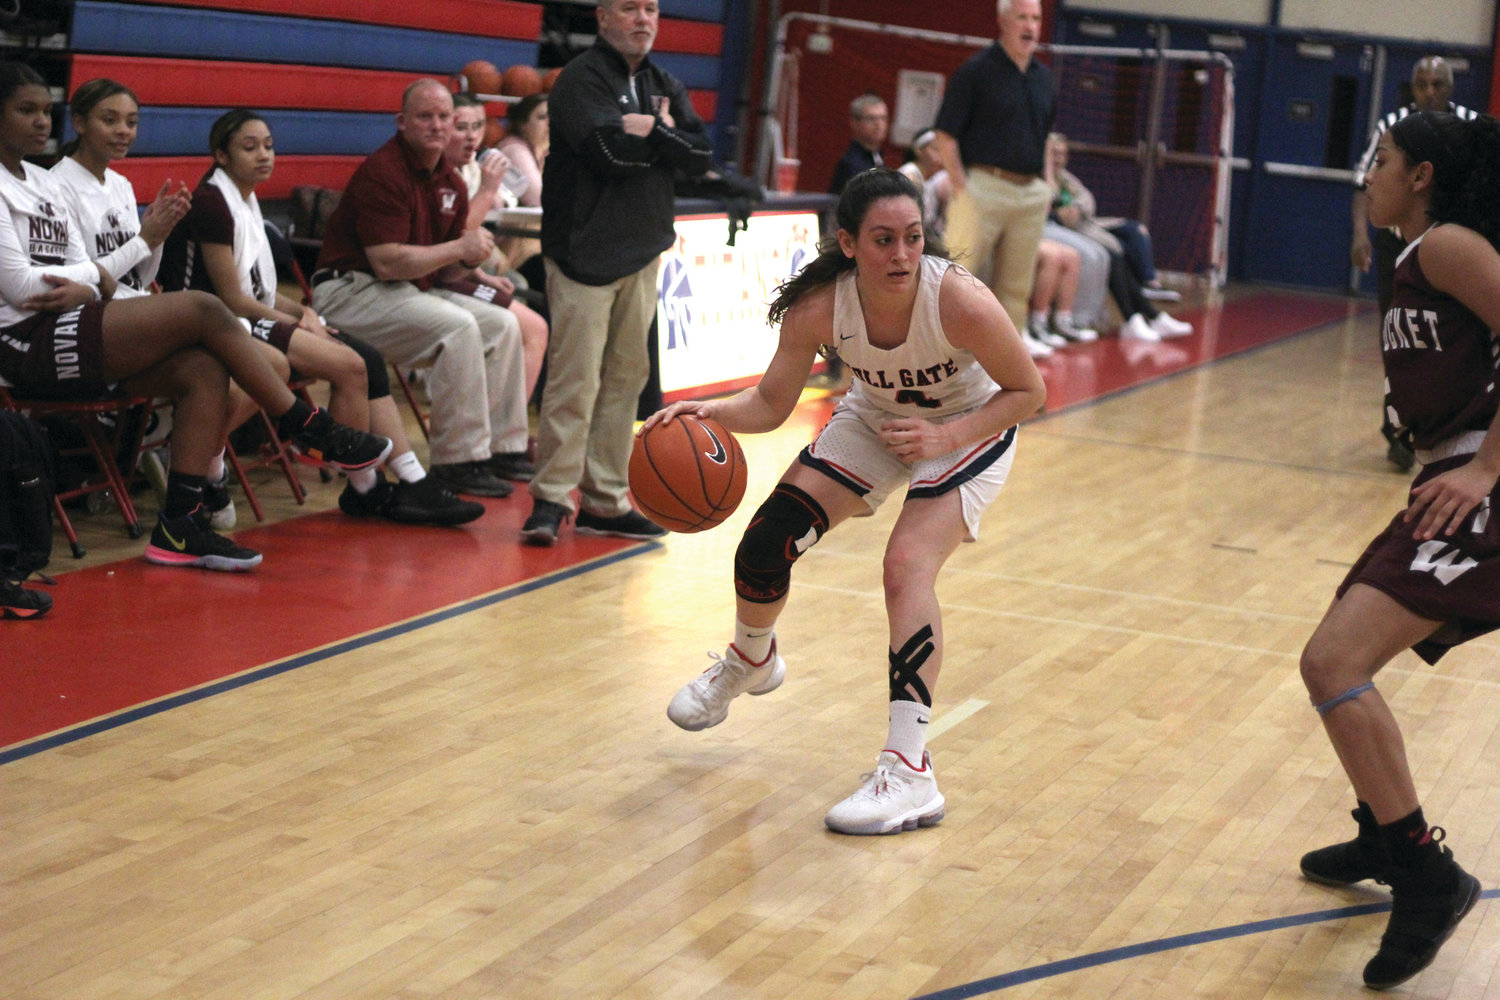 LEADING SCORER: Natalie Aloisio led Toll Gate in scoring, totaling 11 points in Tuesday's loss.